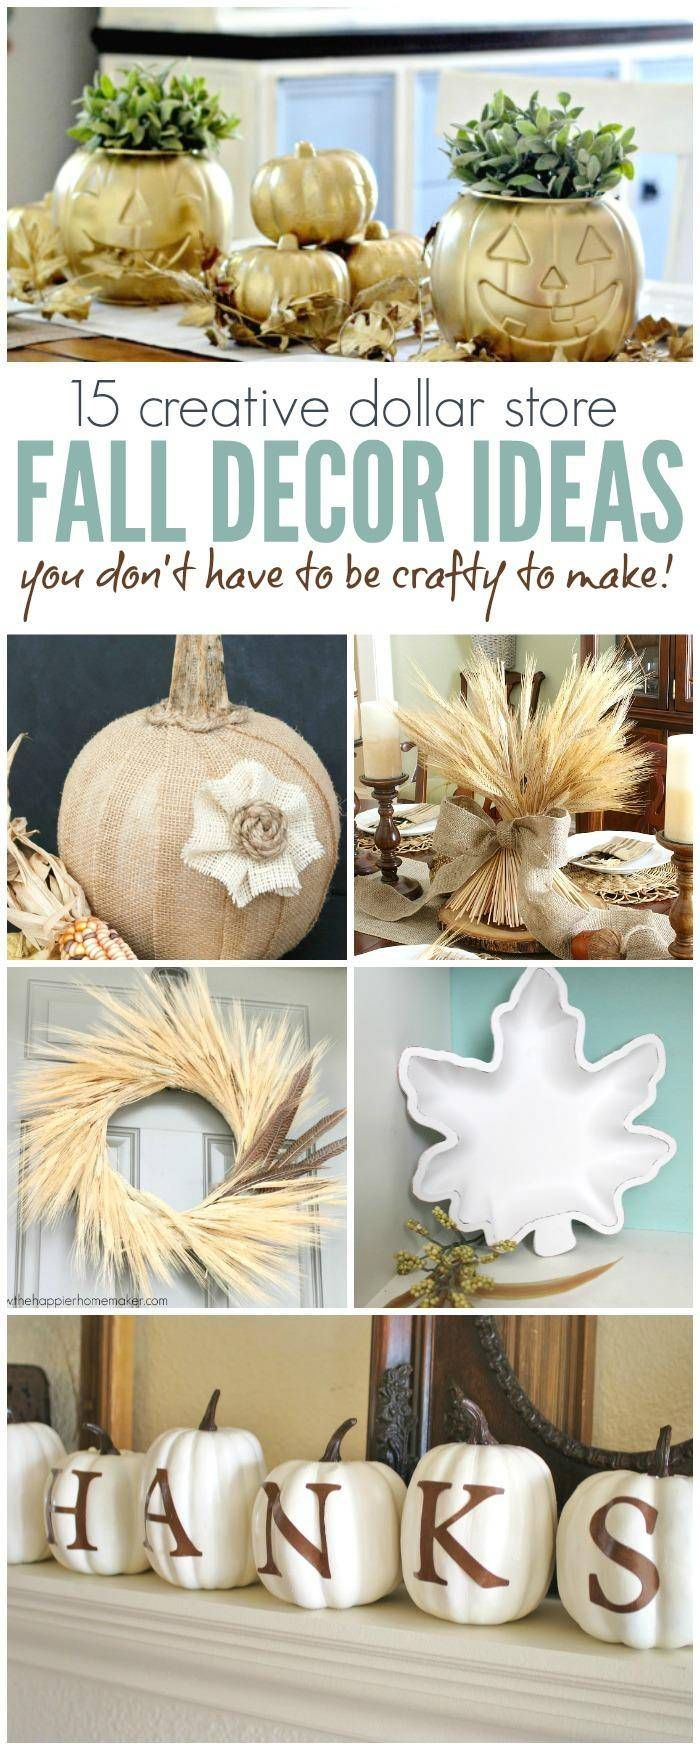 30 Creative Dollar Store Fall Decor Ideas Anyone Can Make - Passion For Savings -   18 thanksgiving decorations for home dollar stores ideas